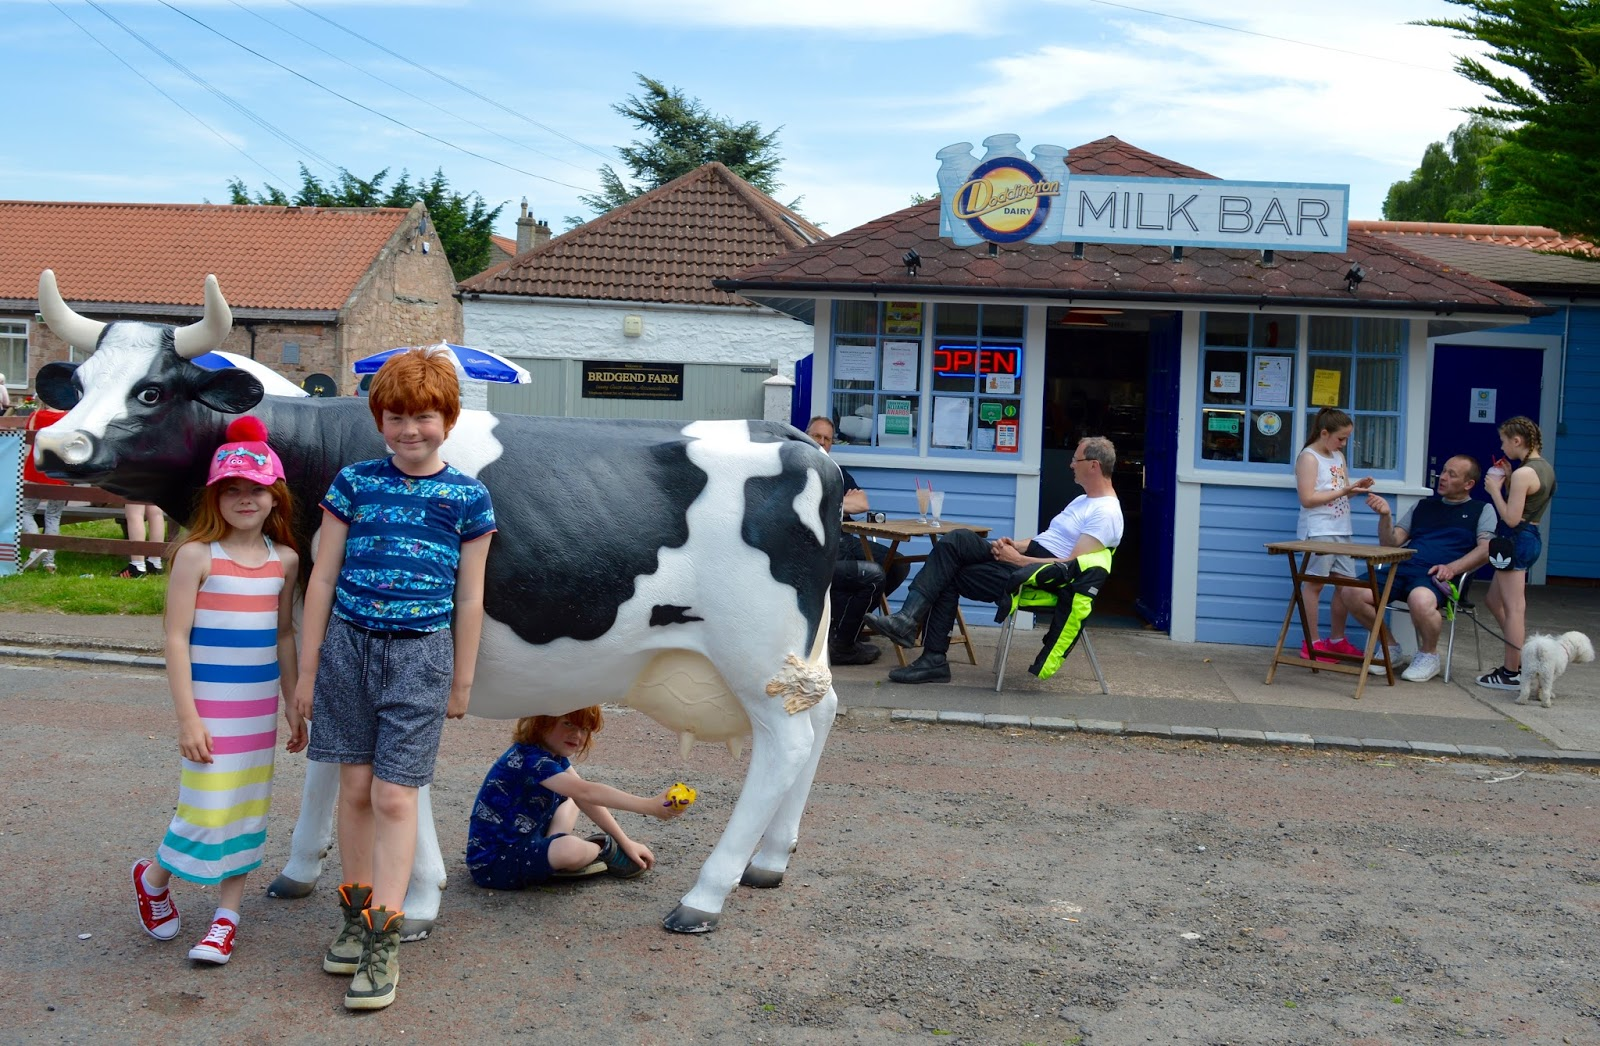 The Doddington Dairy Milk Bar Wooler | Award Winning Ice Cream & treats near the A697 in Northumberland